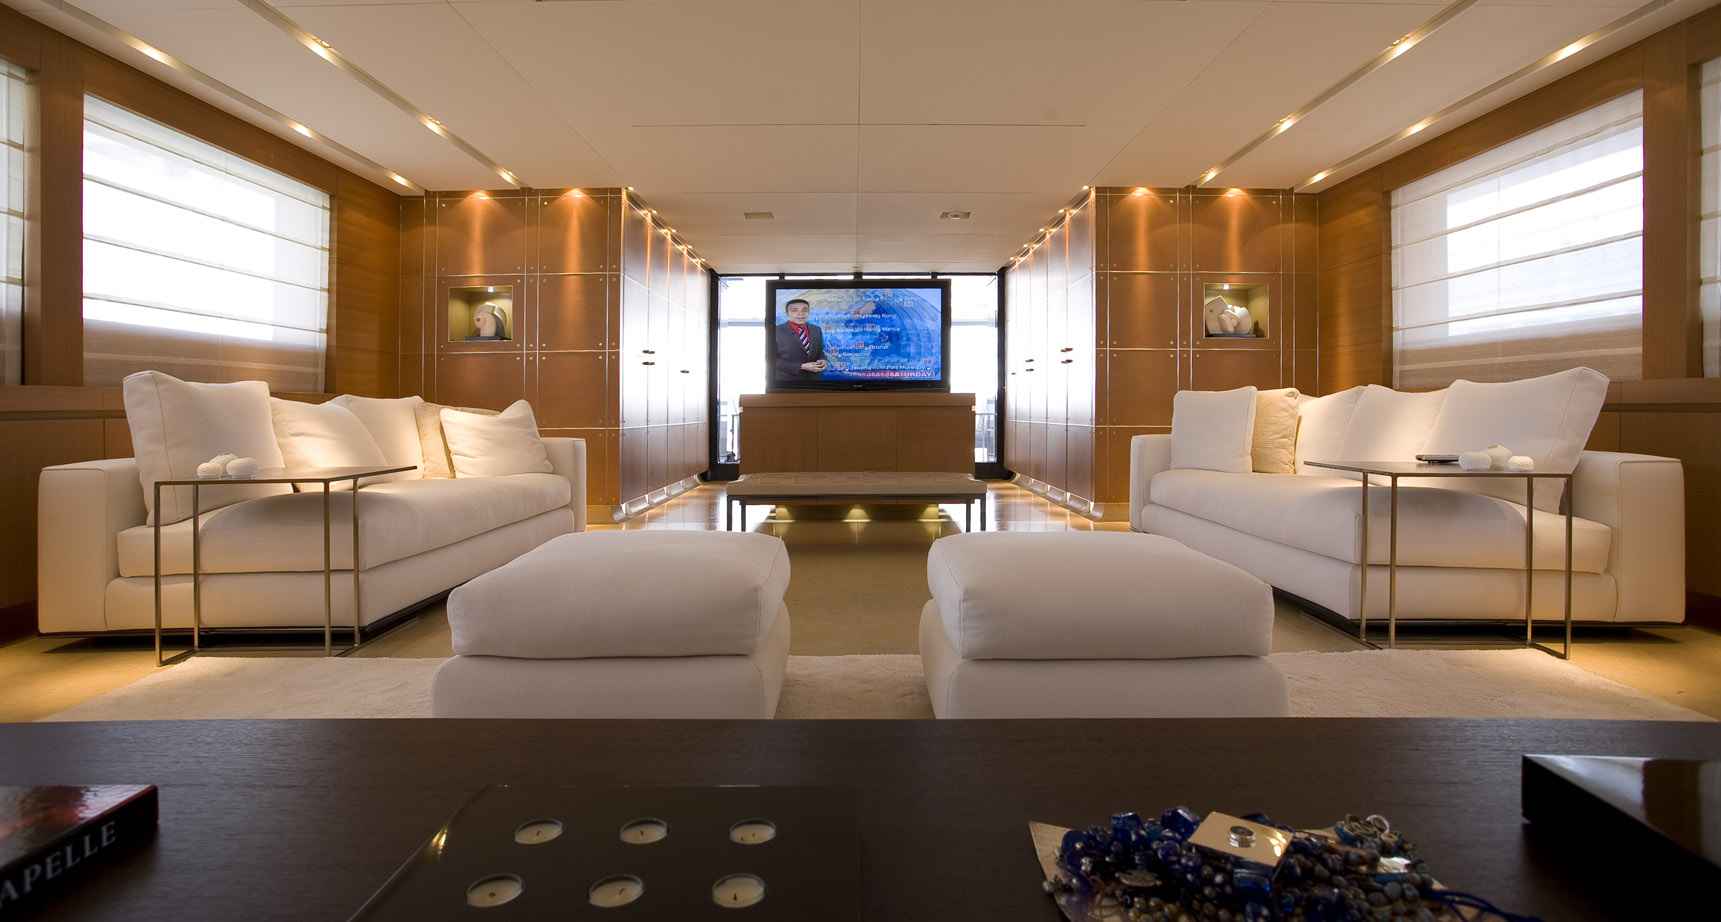 Seakid Tatiana Per Sempre Salon Tv Luxury Yacht